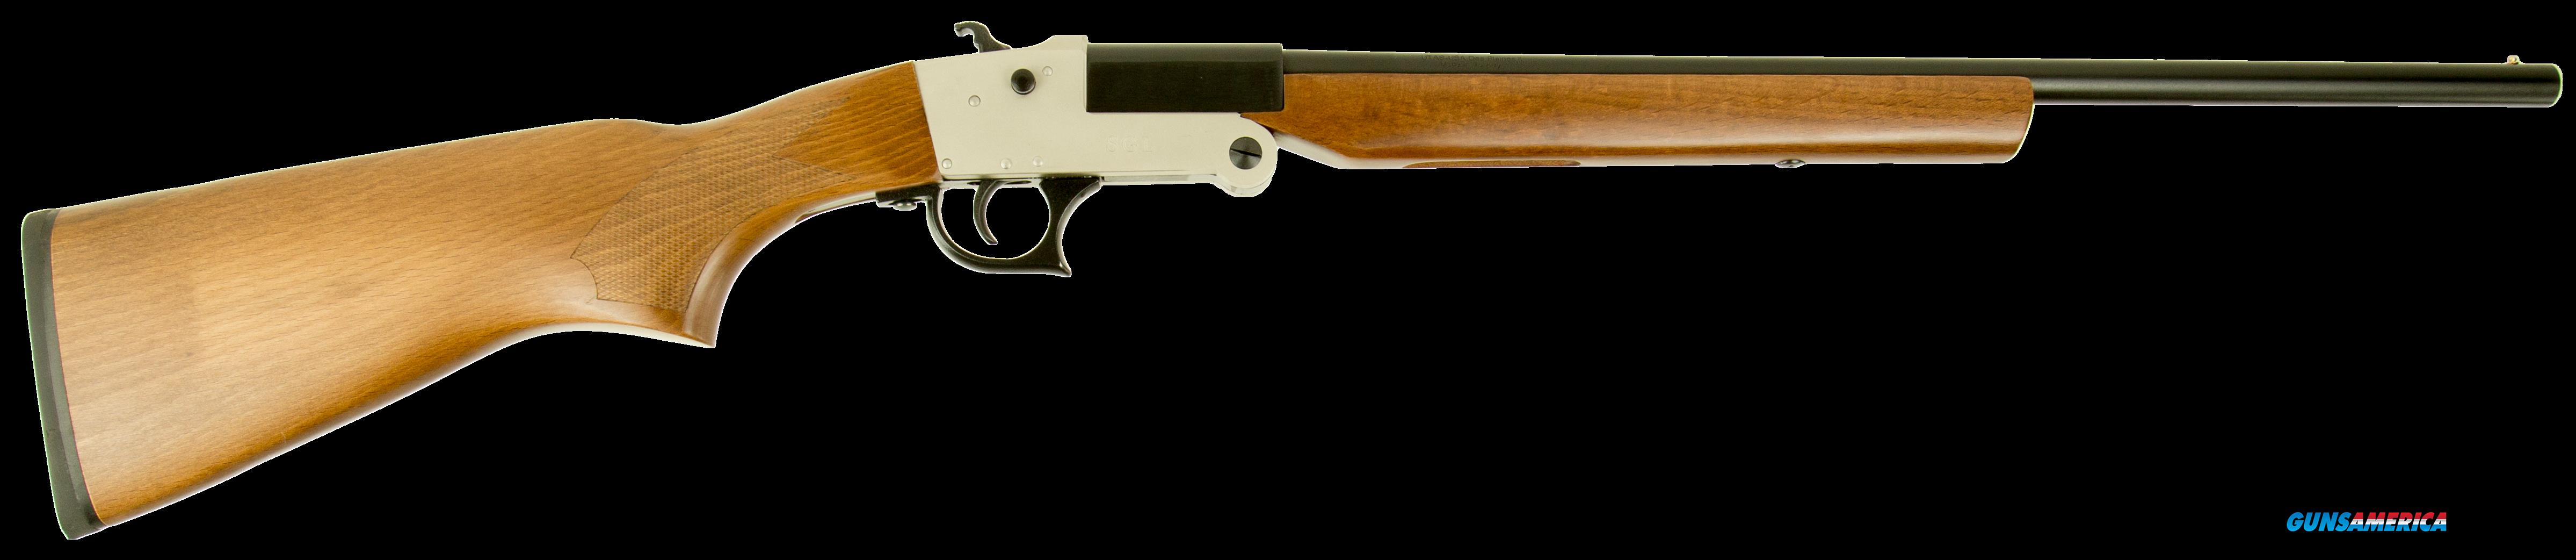 "Hatfield USH410YW SGL Youth Break Open 410 Gauge 20"" 3"" Walnut Stk Silver  Guns > Shotguns > H Misc Shotguns"